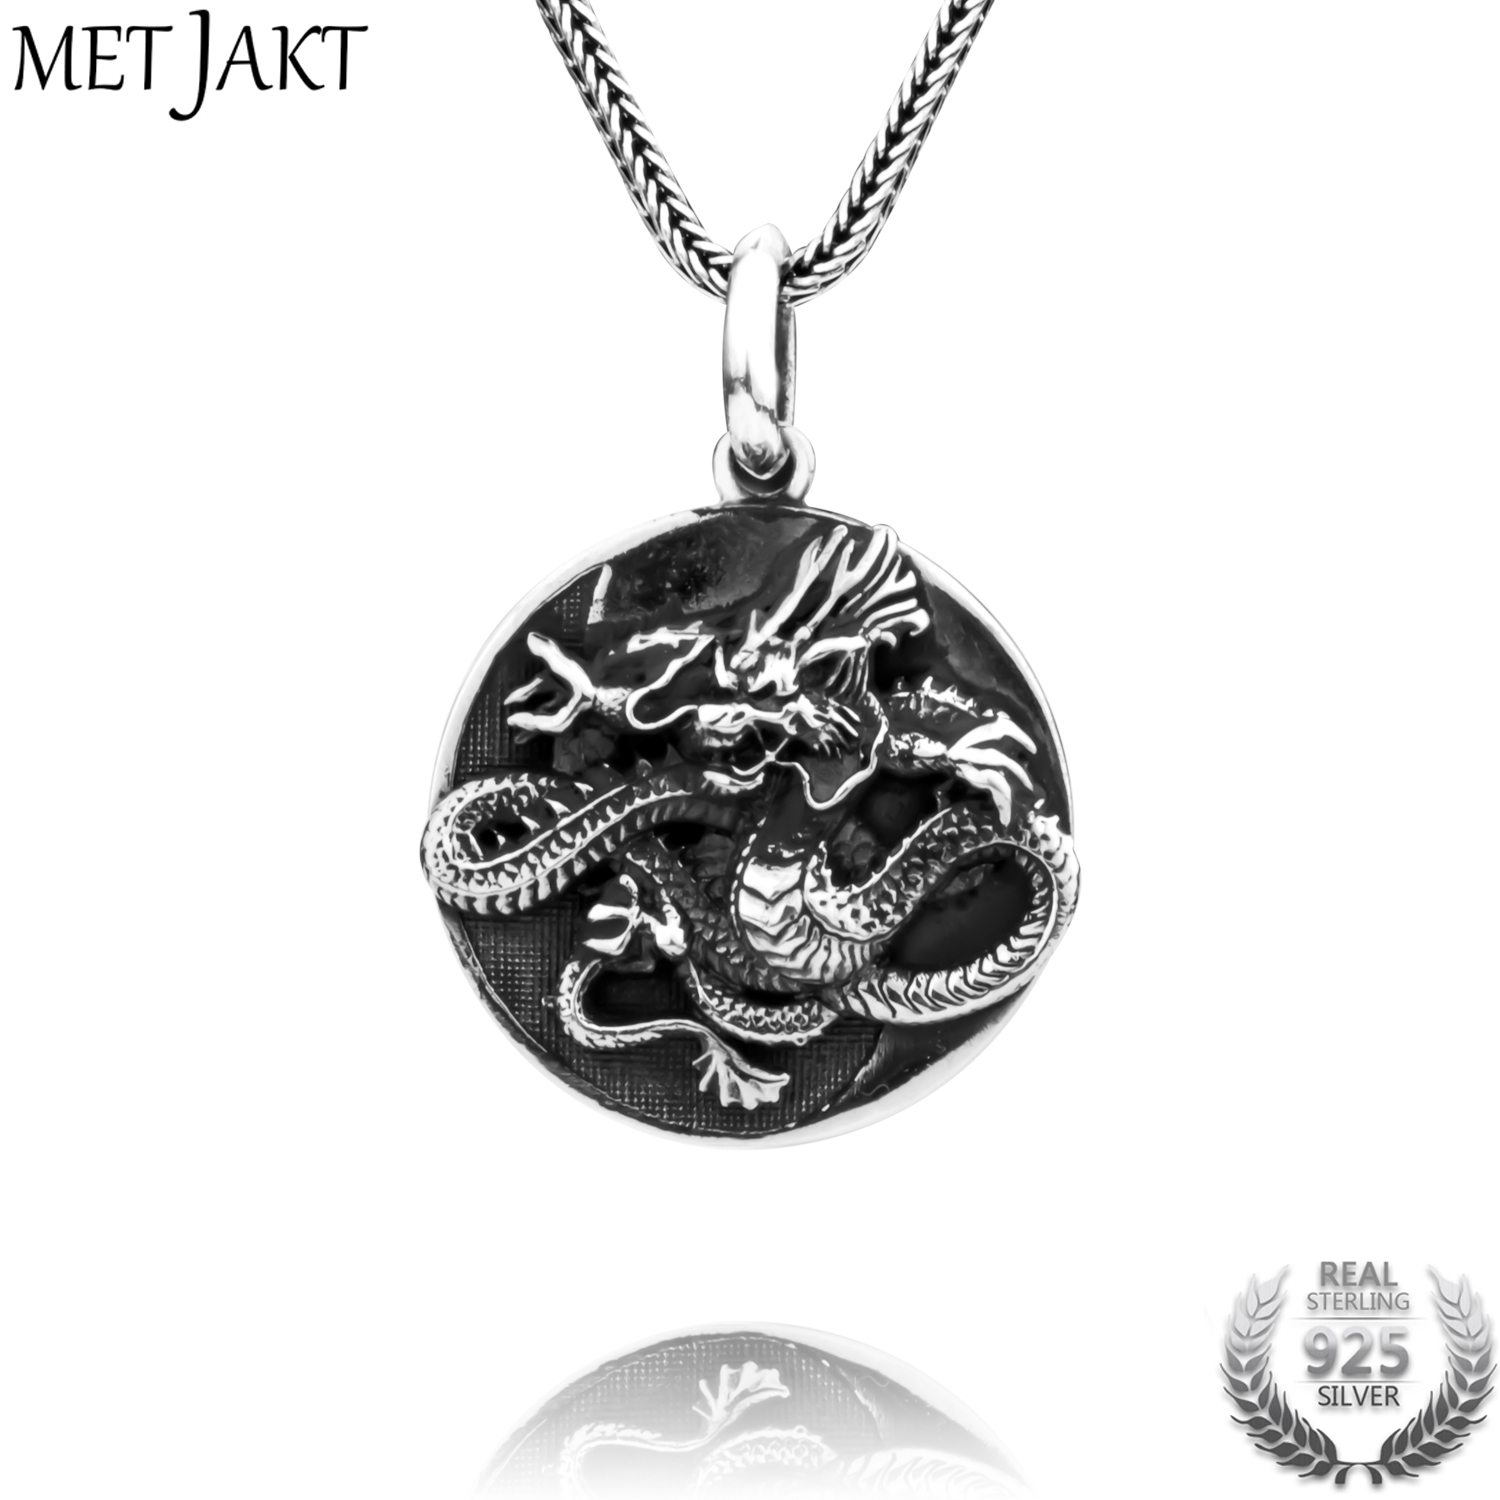 MetJakt Handmade 925 Sterling Silver Dragon Pendant Necklace Vintage Tai Chi Gossip Pendant for Mens Punk JewelryMetJakt Handmade 925 Sterling Silver Dragon Pendant Necklace Vintage Tai Chi Gossip Pendant for Mens Punk Jewelry